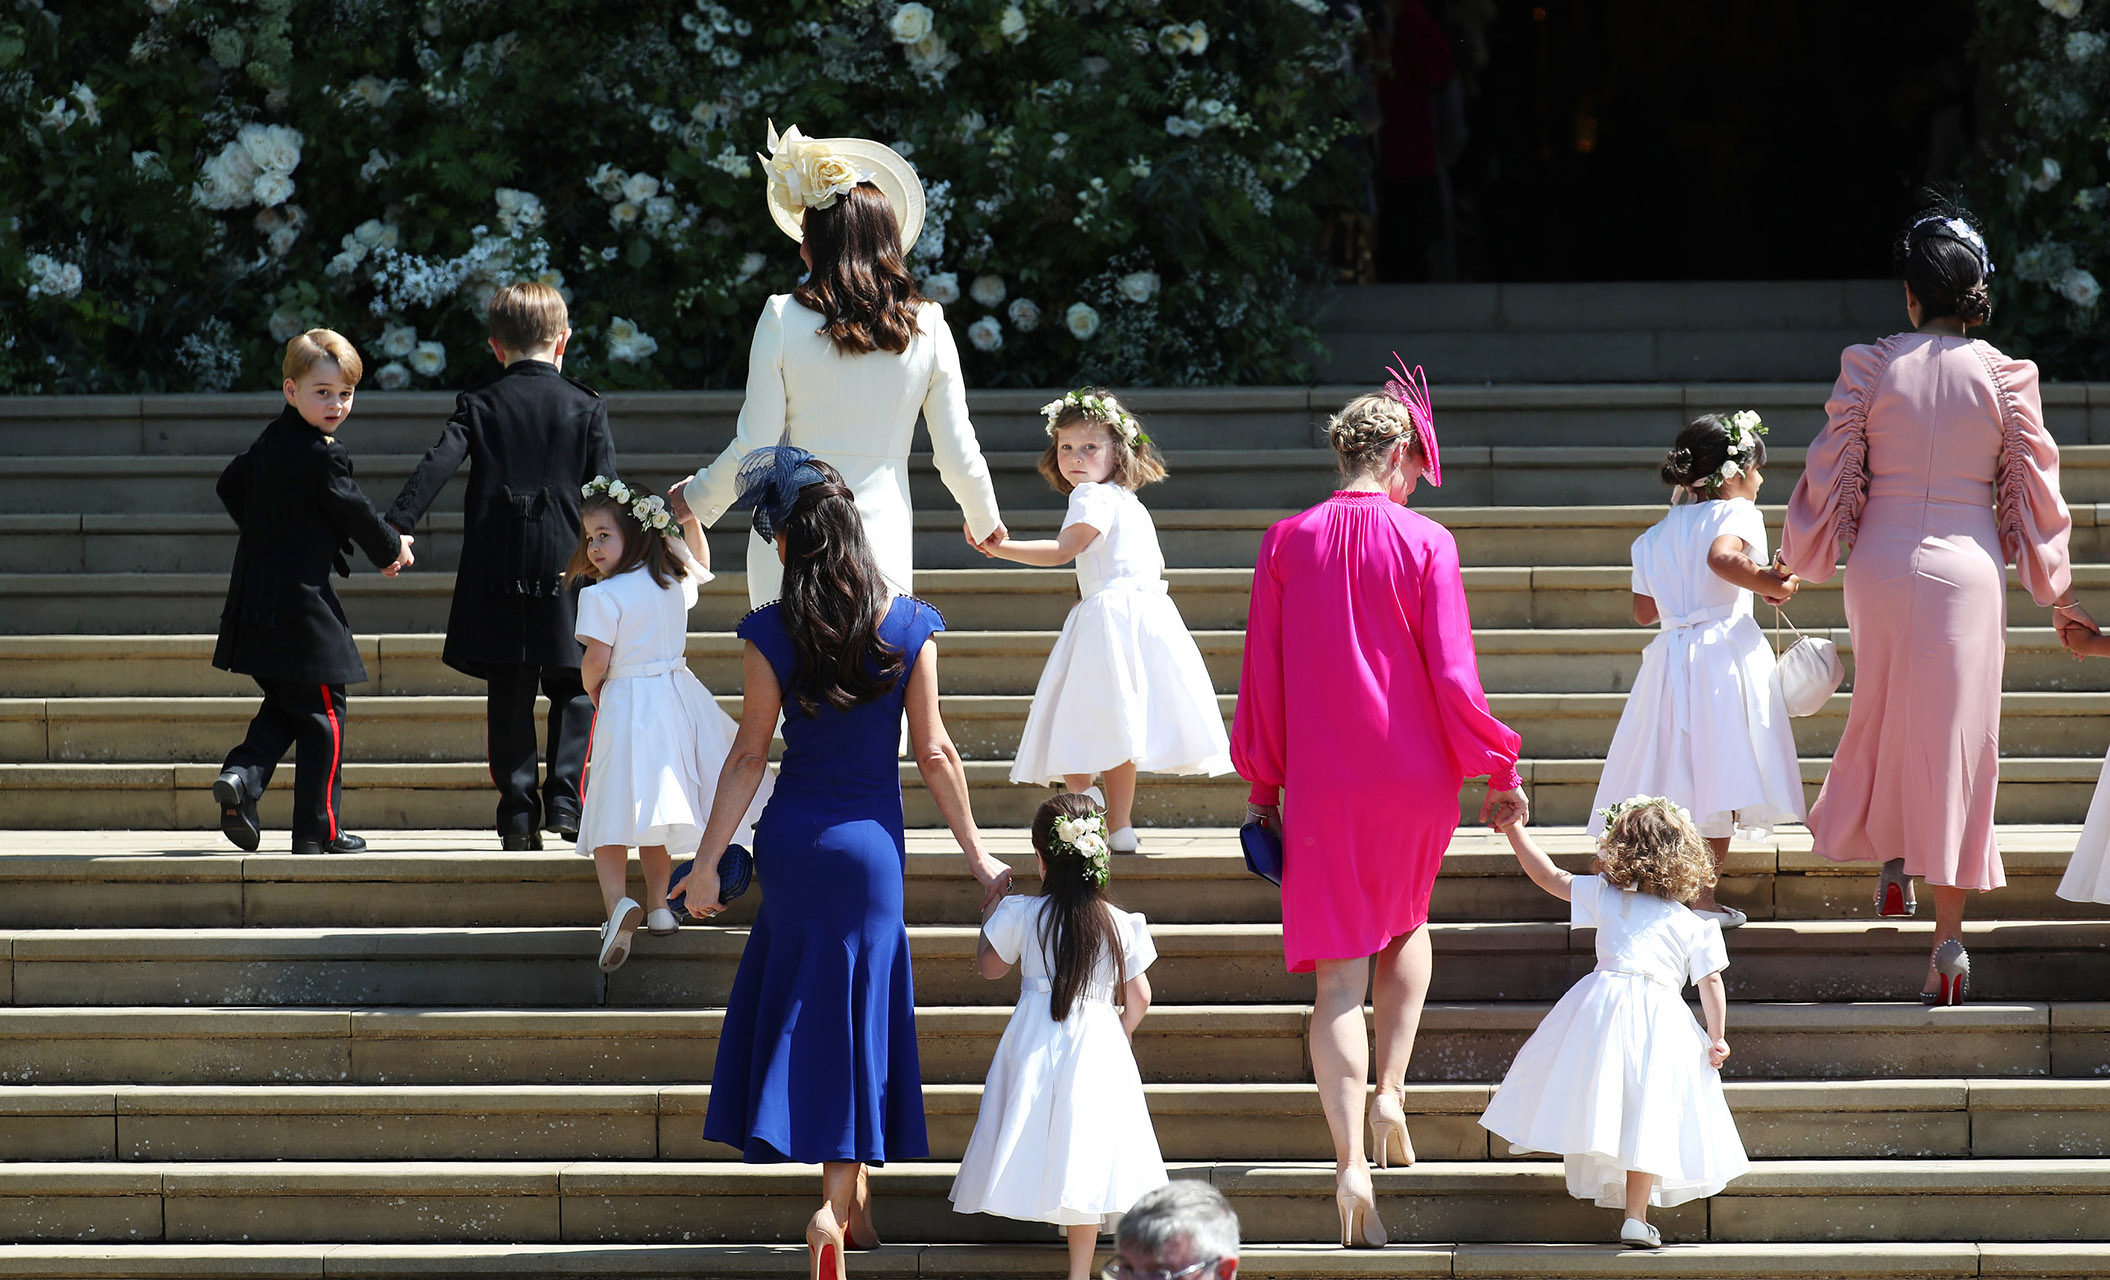 Jessica Mulroney with Prince George, Princess Charlotte and the rest of the bridesmaids and pageboys